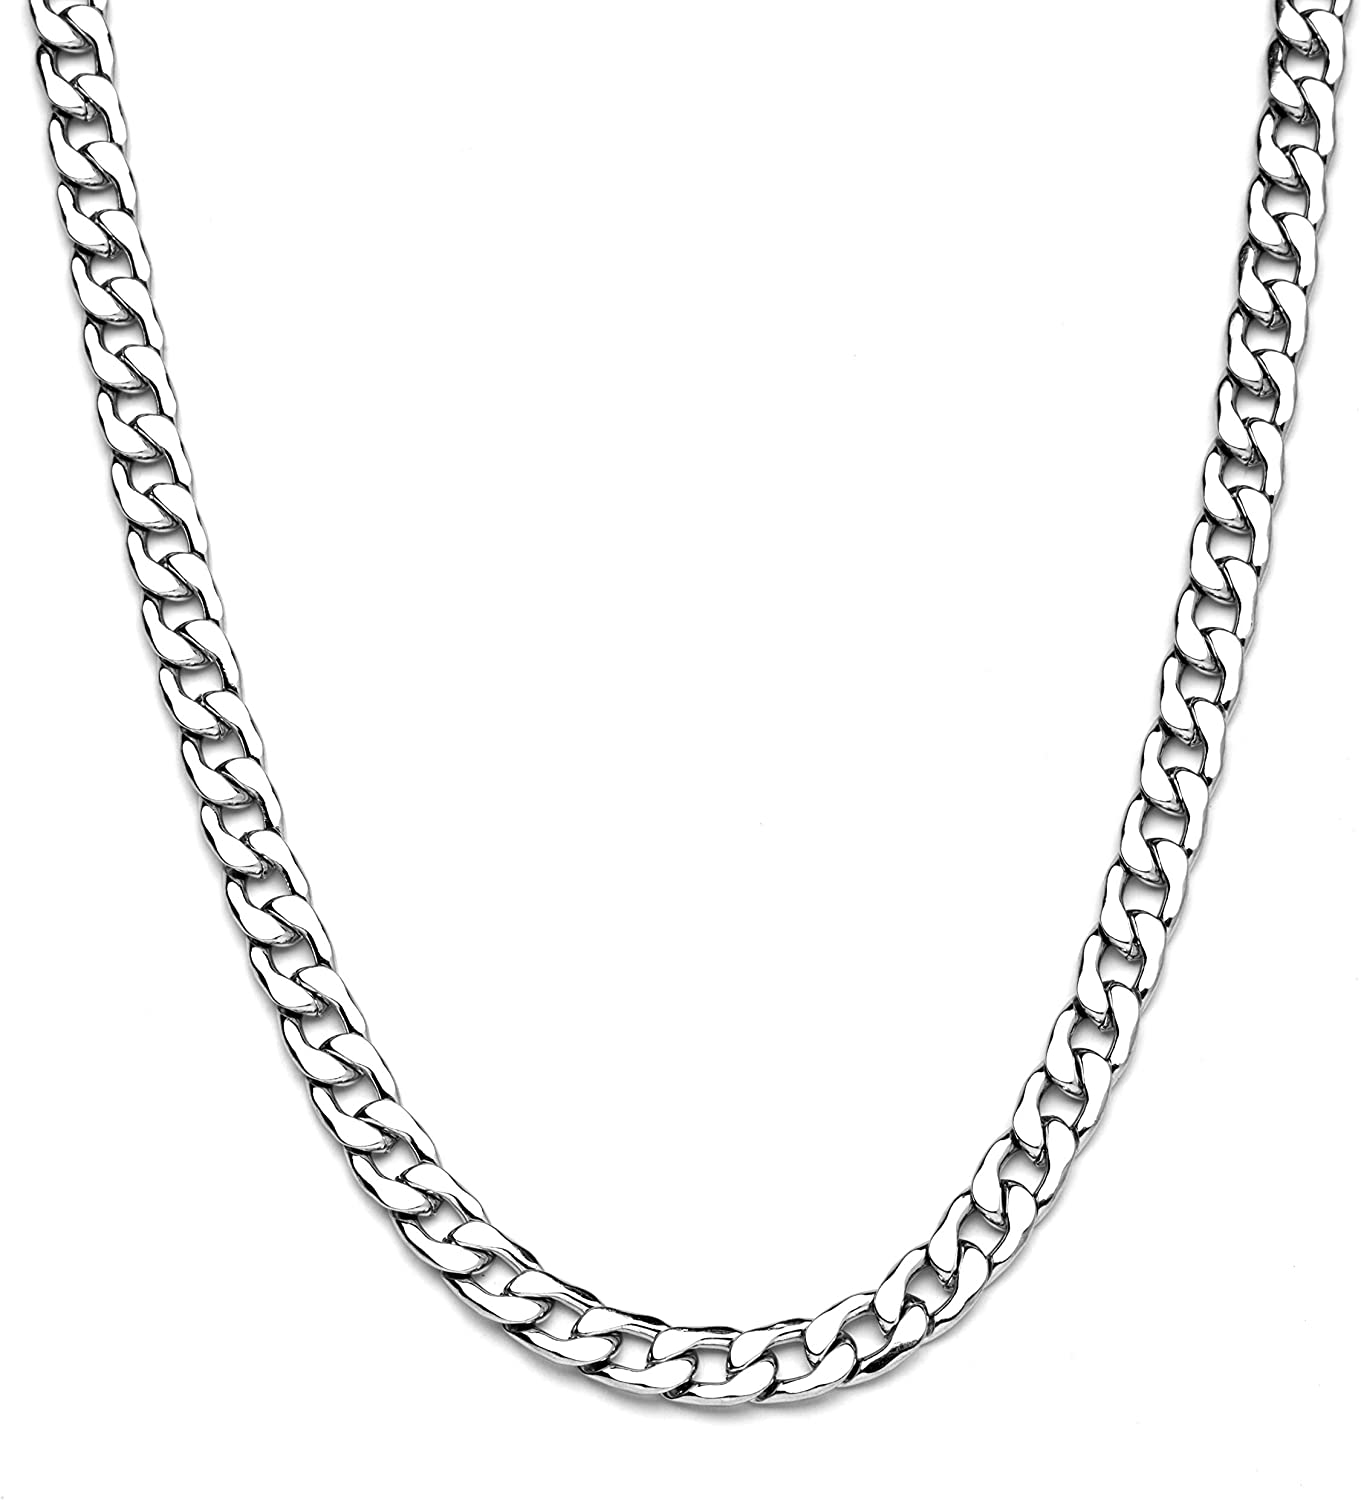 Fashion Casual Retro U-shaped Stainless Steel Silver Necklace Jewelry Men